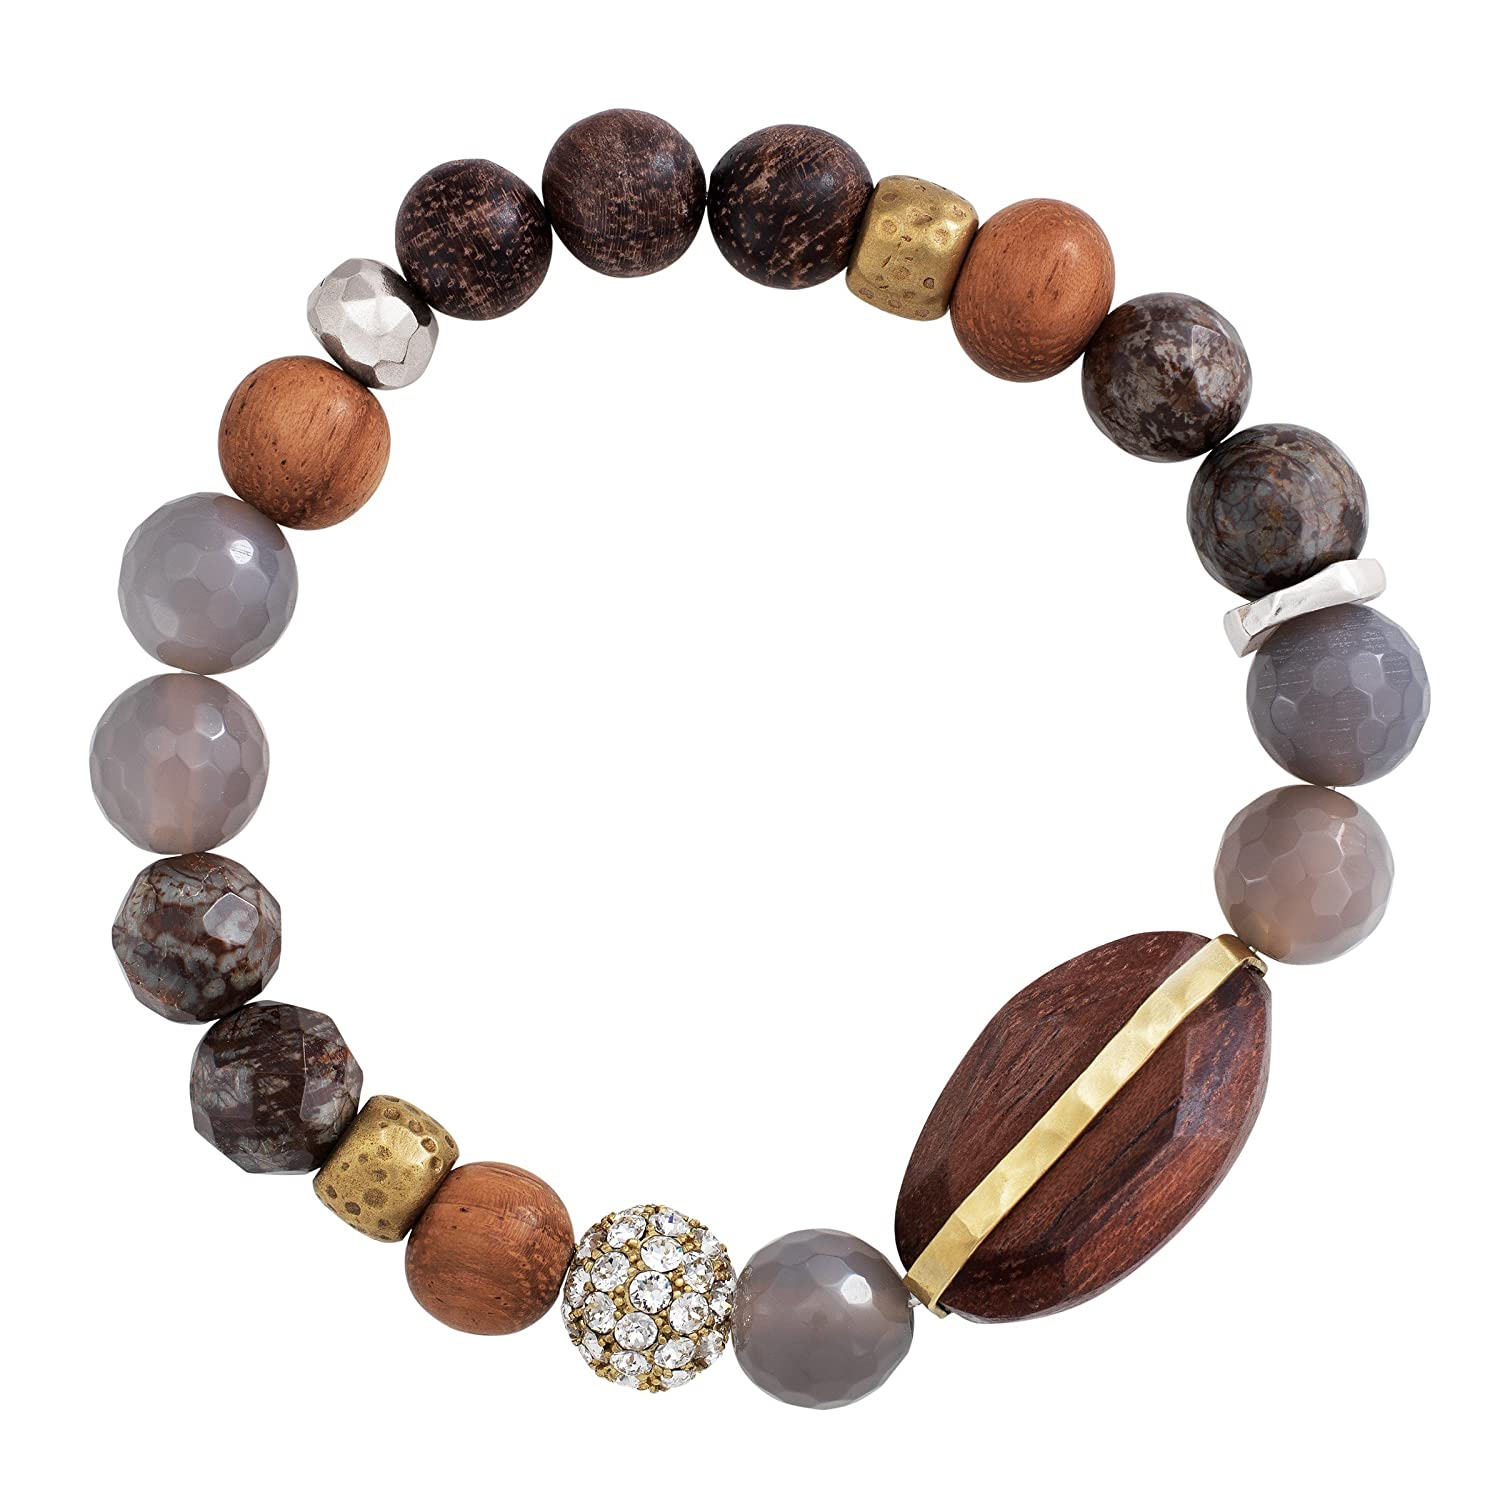 "CDM product Silpada 'Wildwood' Brass, Agate, and Wood Stretch Bracelet, 6.75"" small thumbnail image"